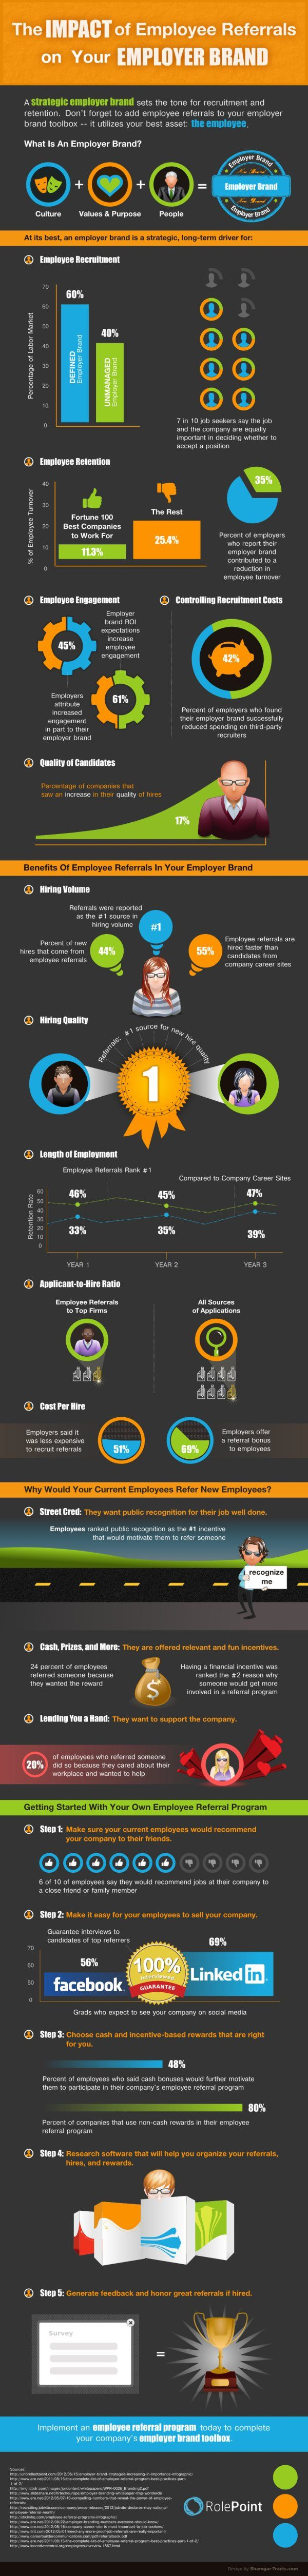 Check out these stats on the importance of a strong employer brand in this infographic and in how www.HRMC.com does employment branding